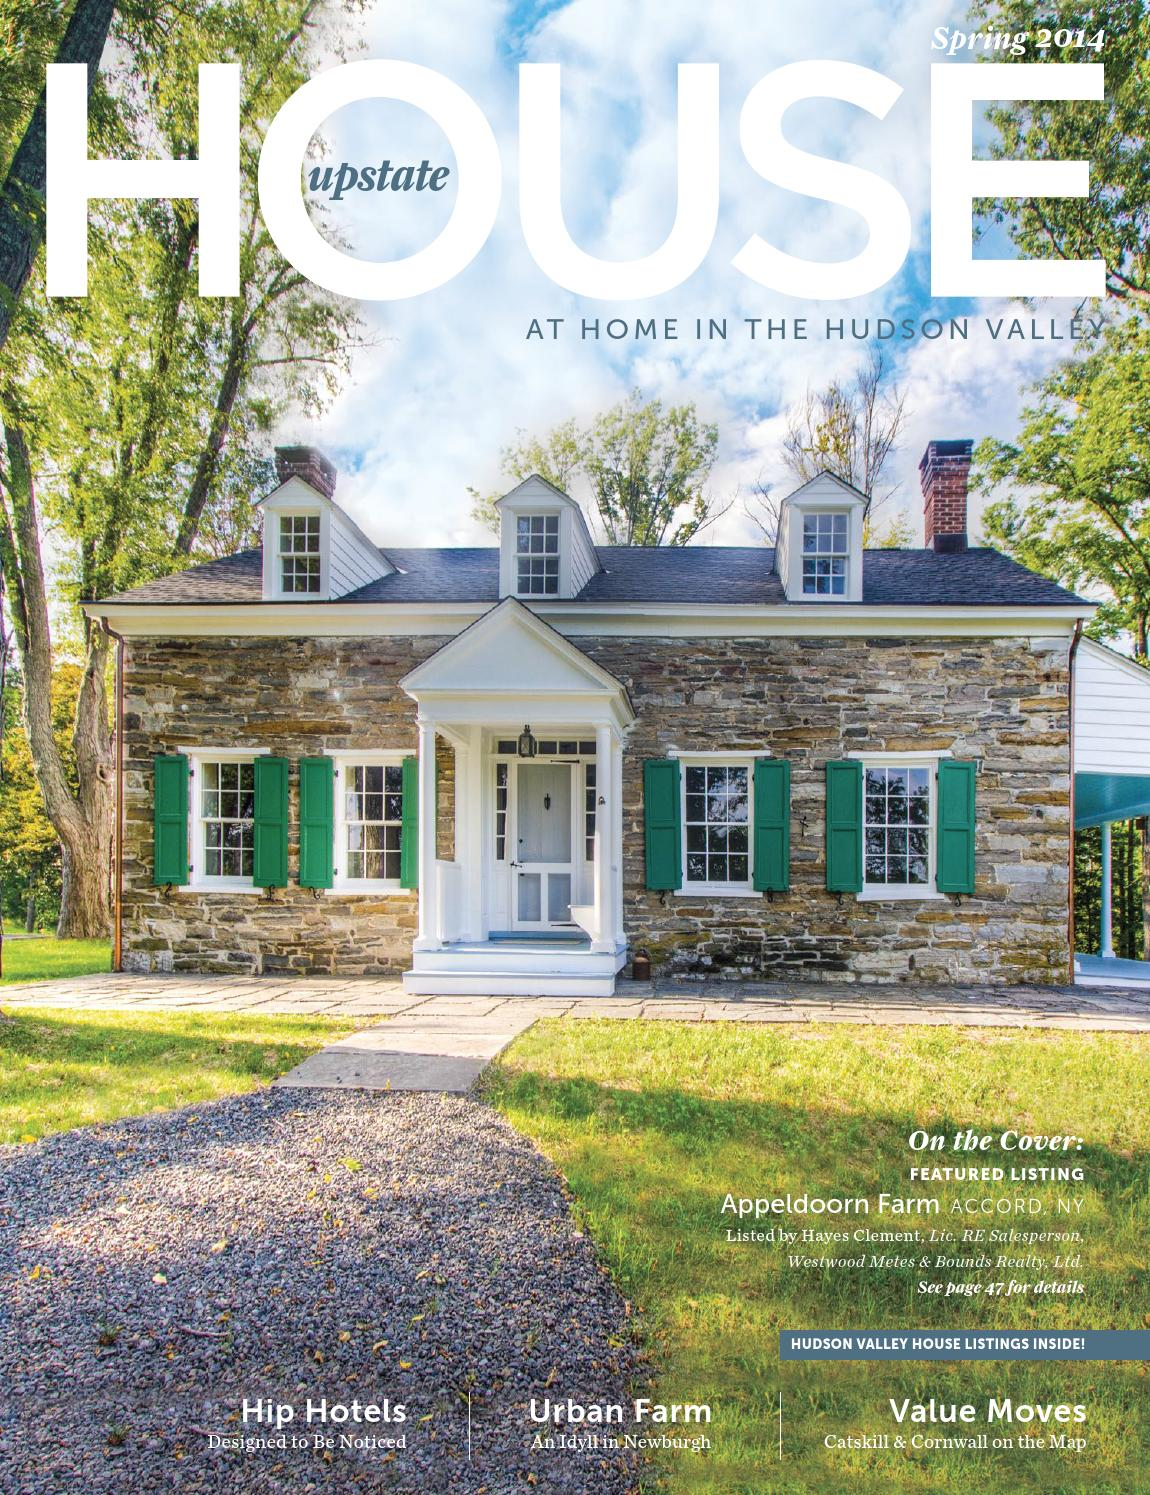 Upstate House, Spring 2014 by Upstate House   issuu